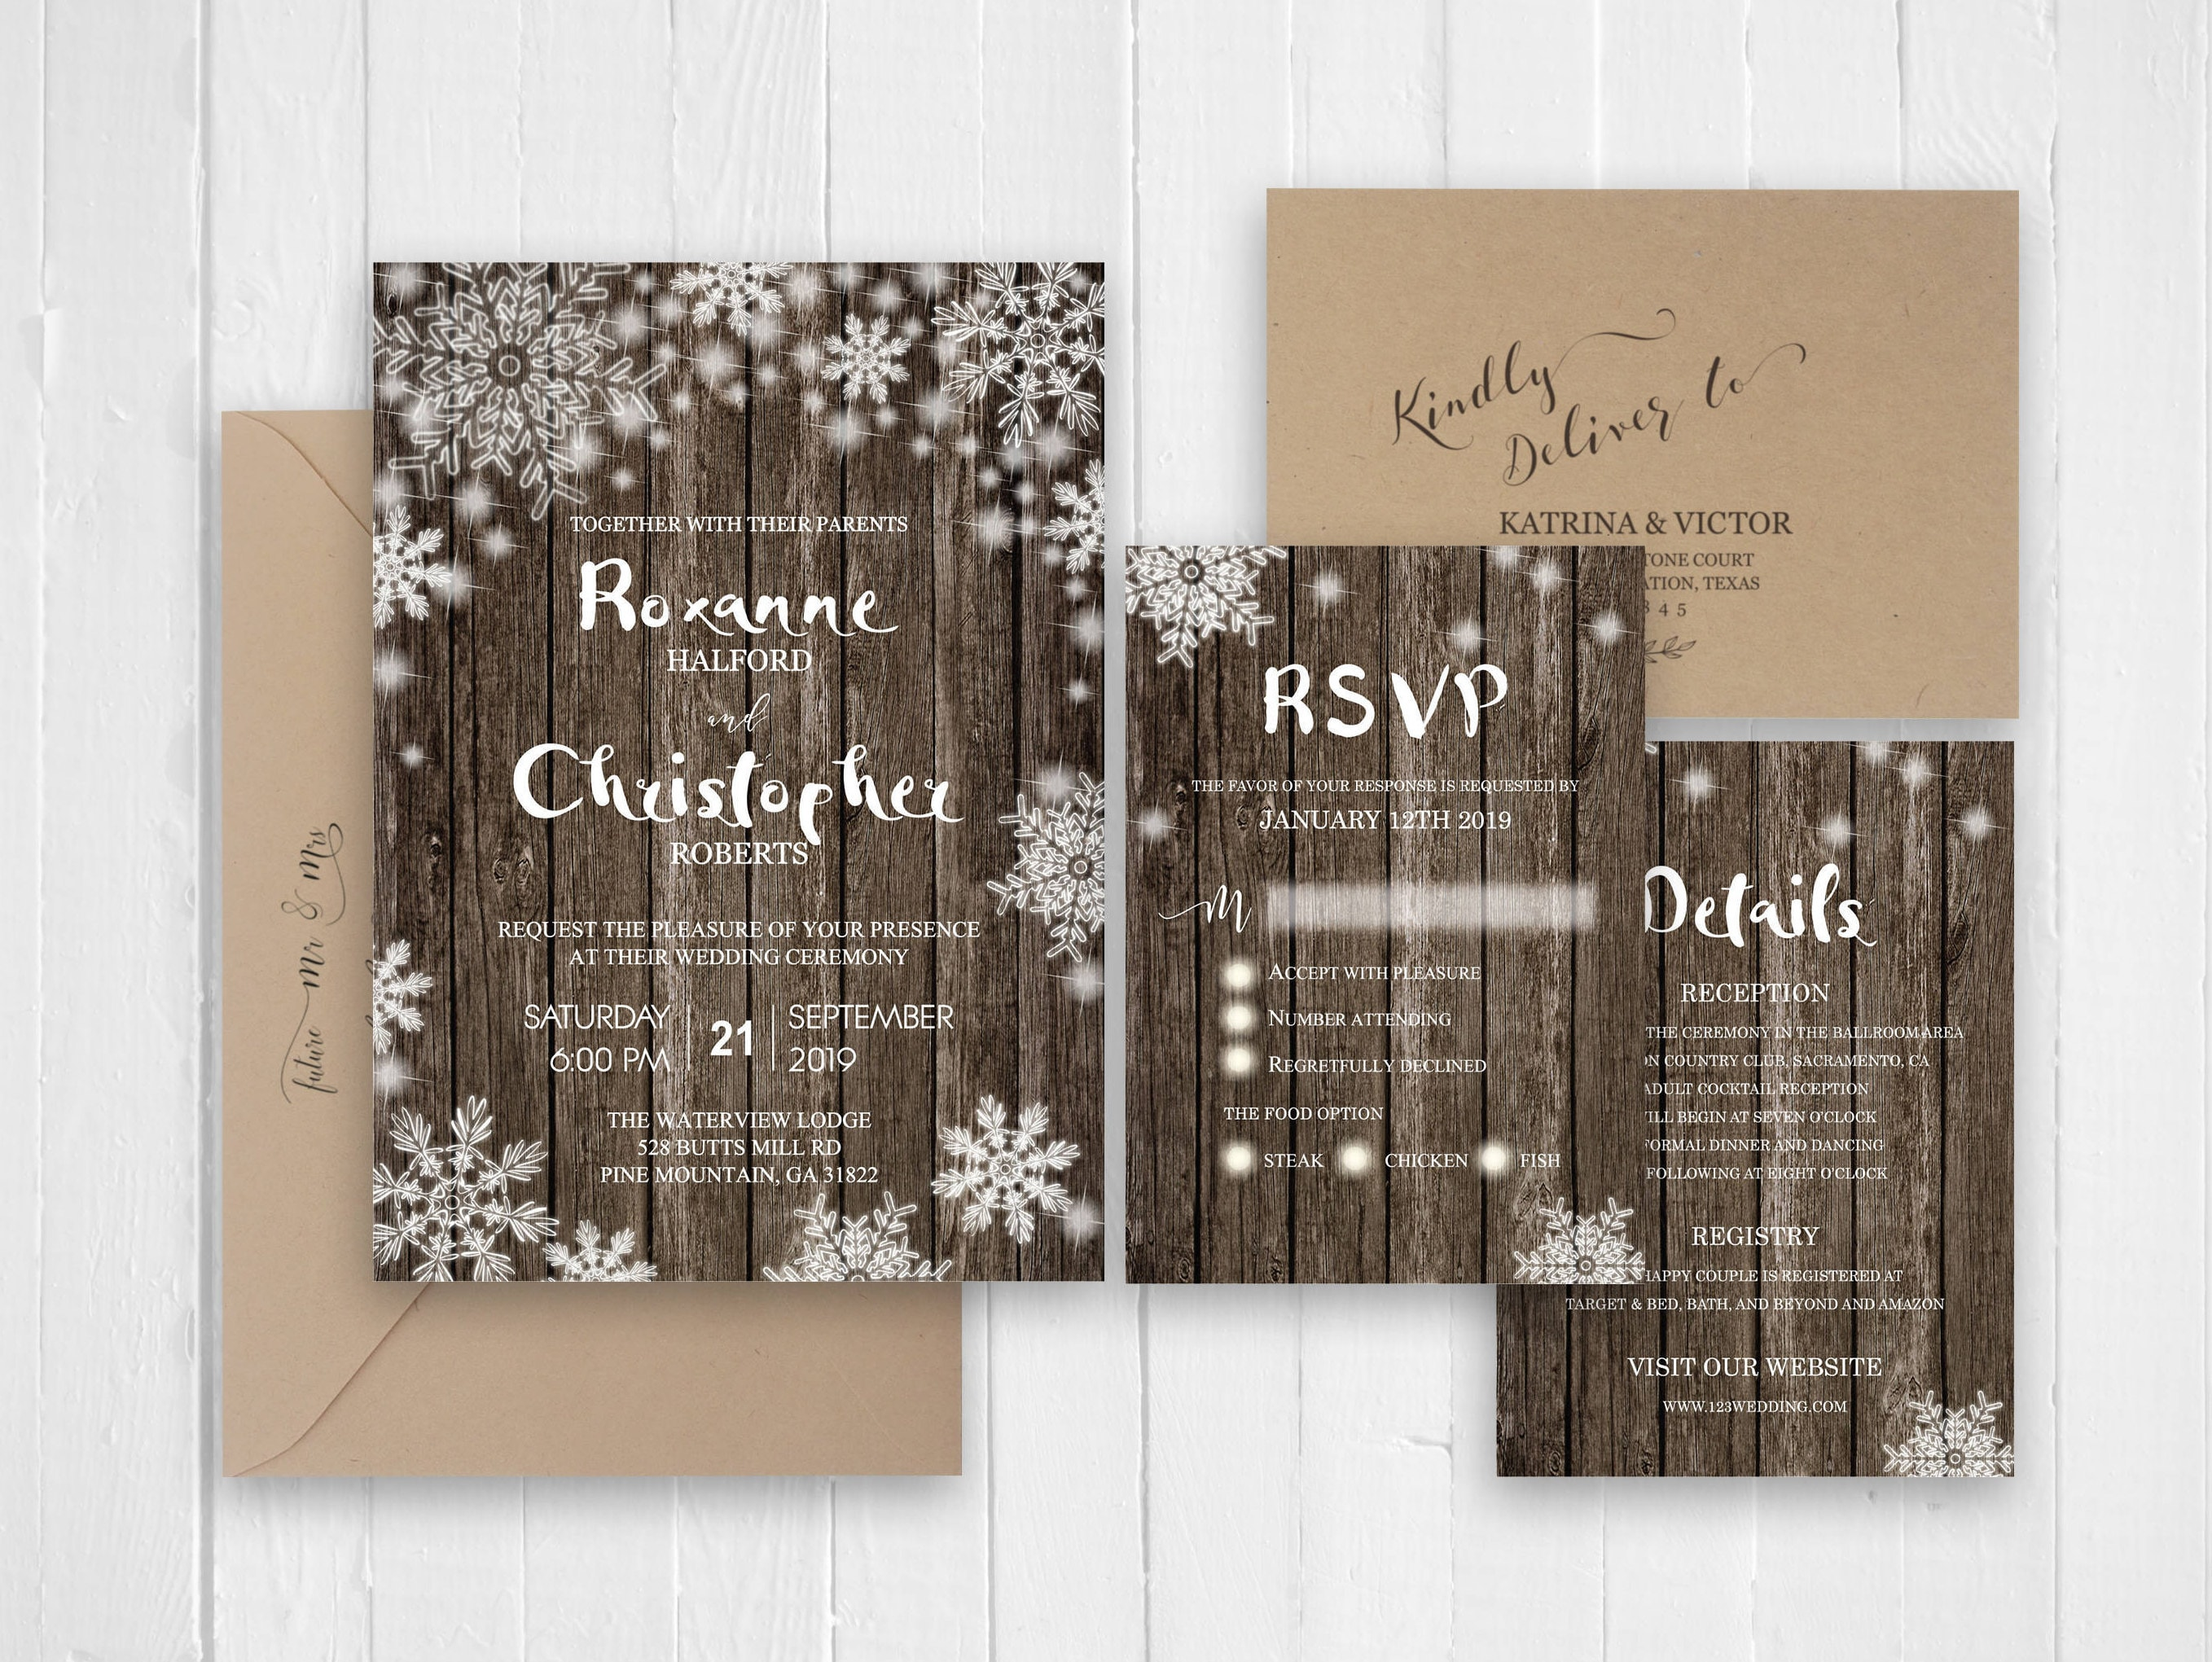 120lb Card Stock Winter snow wedding invitation Rustic barn wood